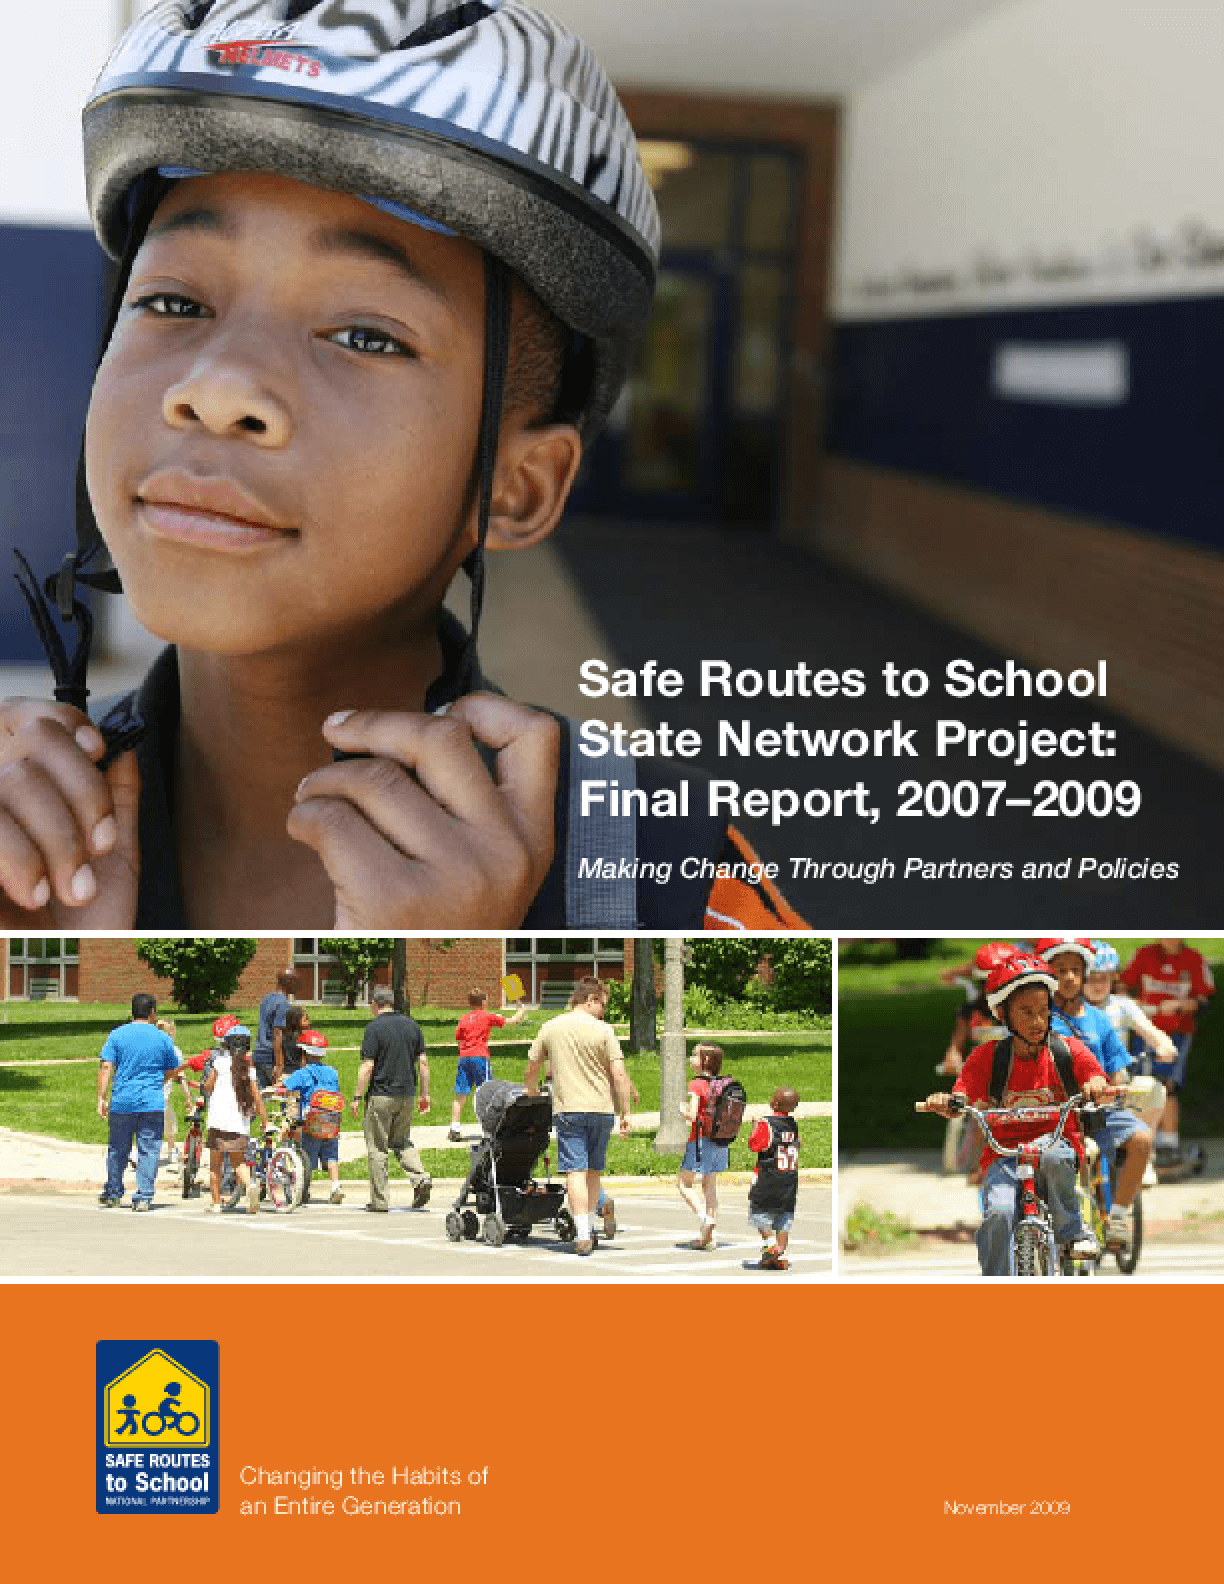 Safe Routes to School State Network Project: 2007-2009 Final Report